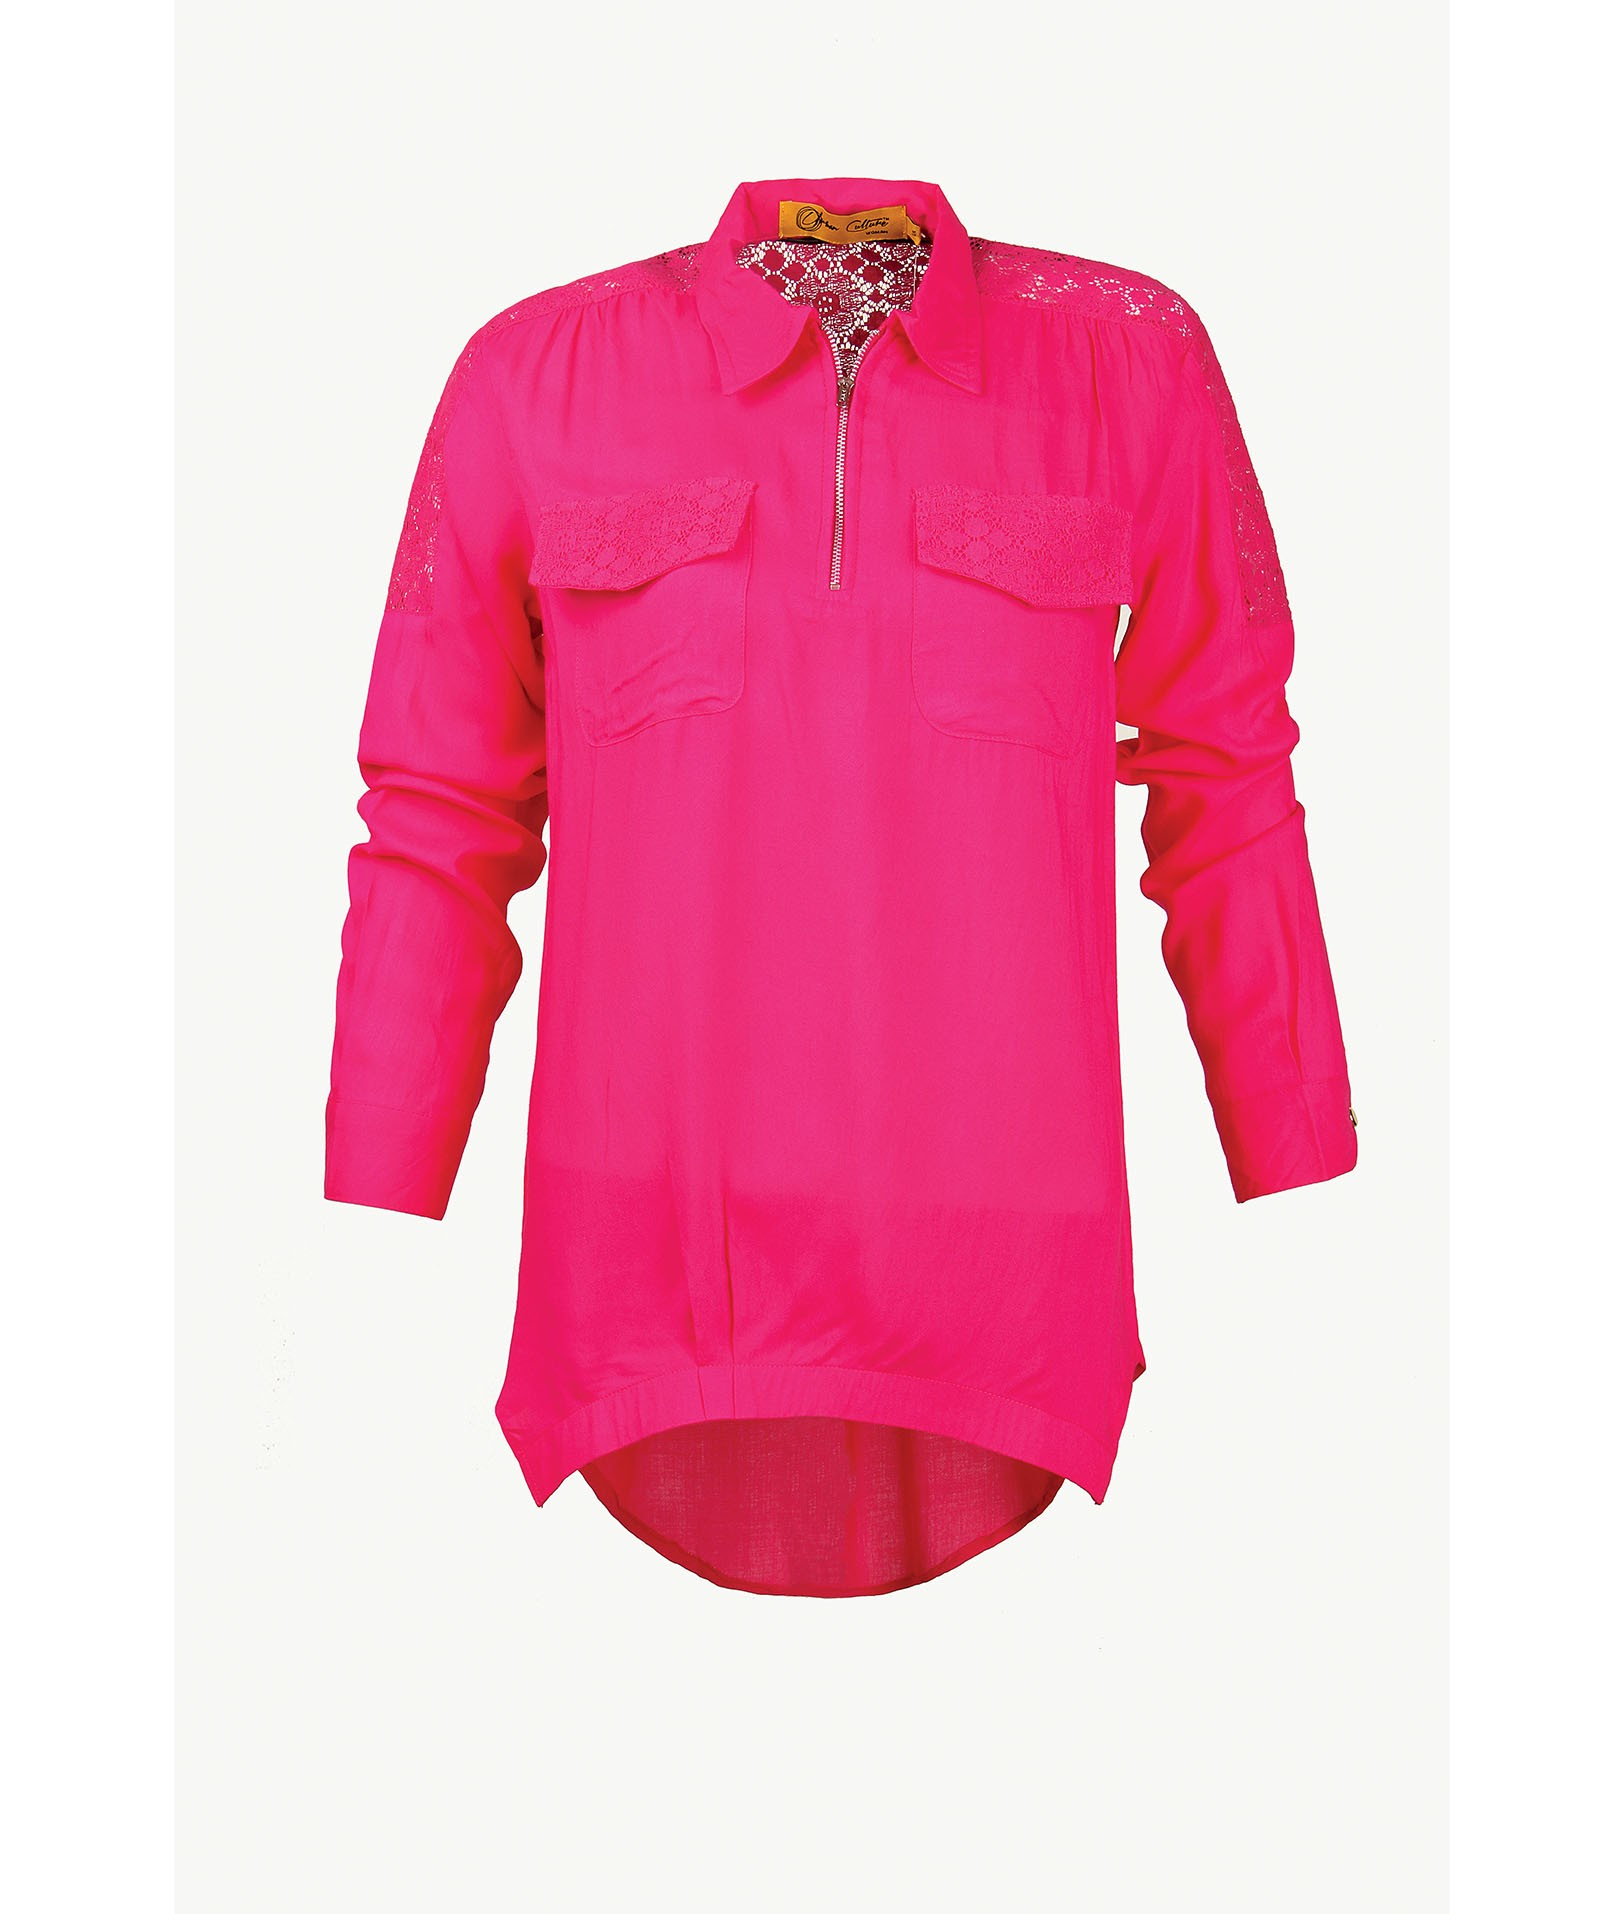 Urban-Culture-Shirts-Collection-2014-2015 (12)